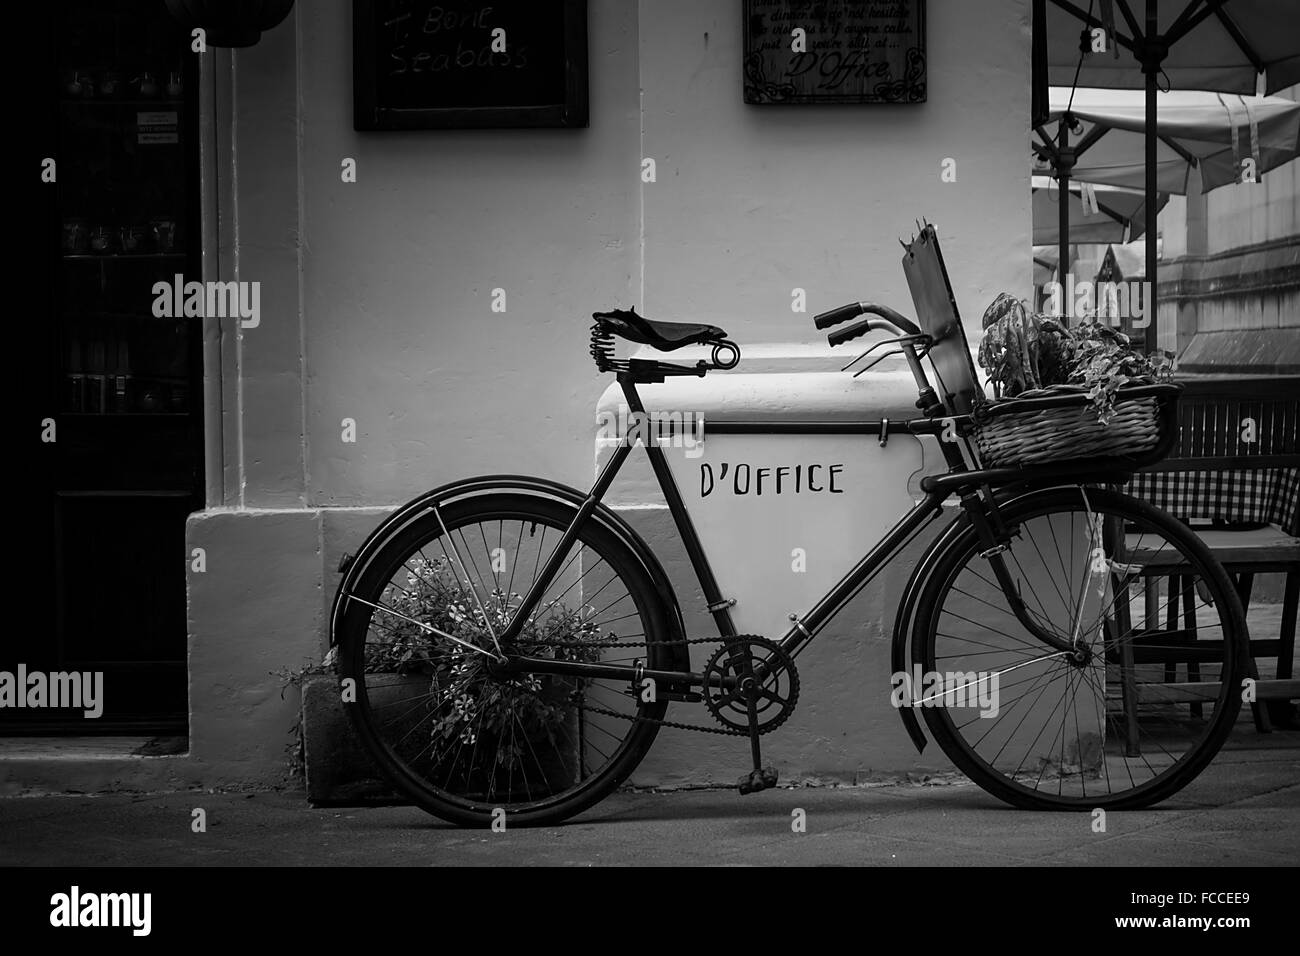 Bicycle Parked Against Wall - Stock Image